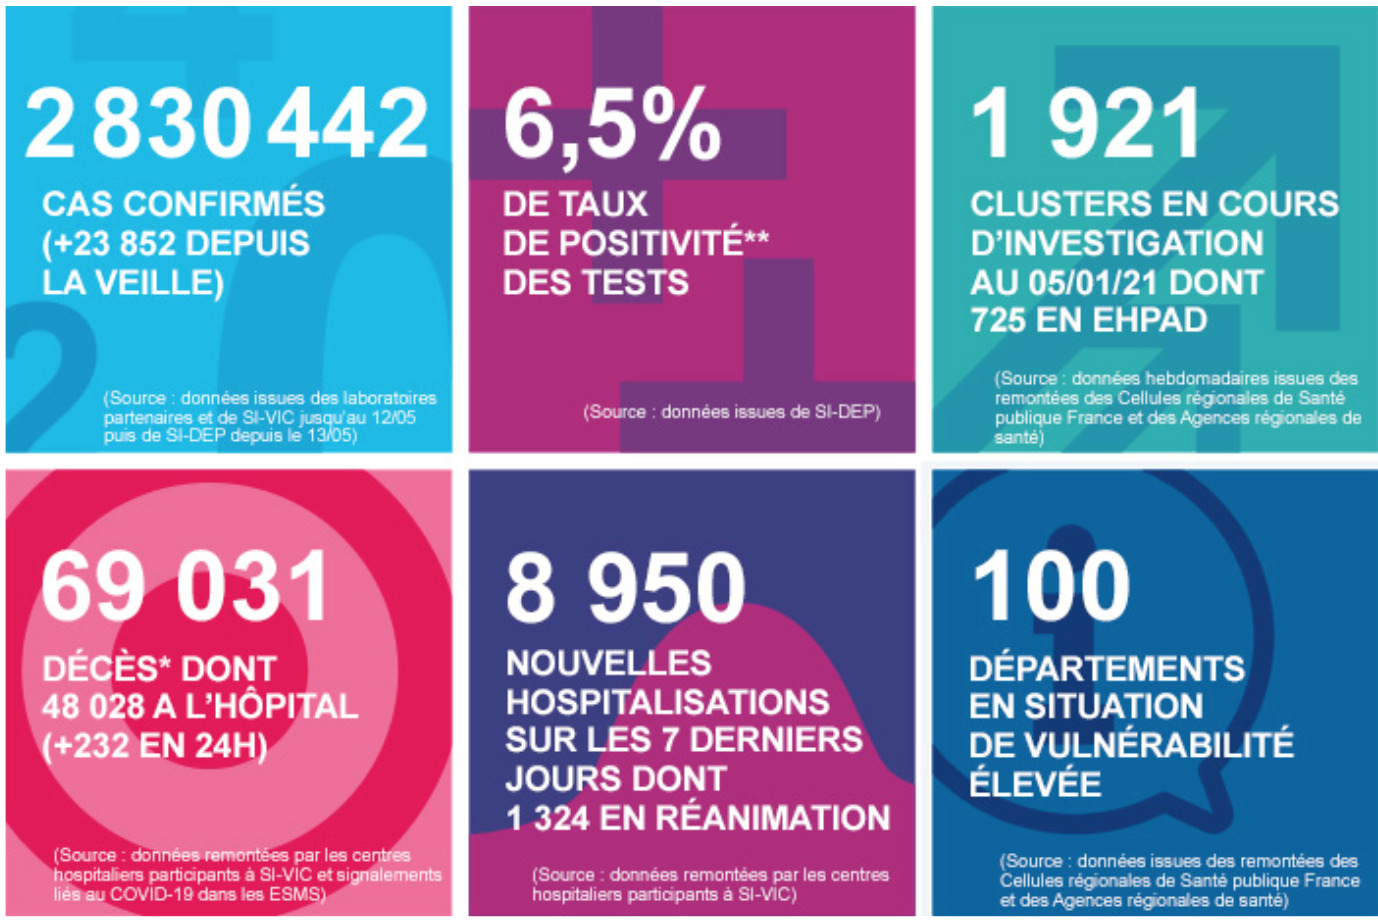 Covid-19 figures in France for 13 January 2021